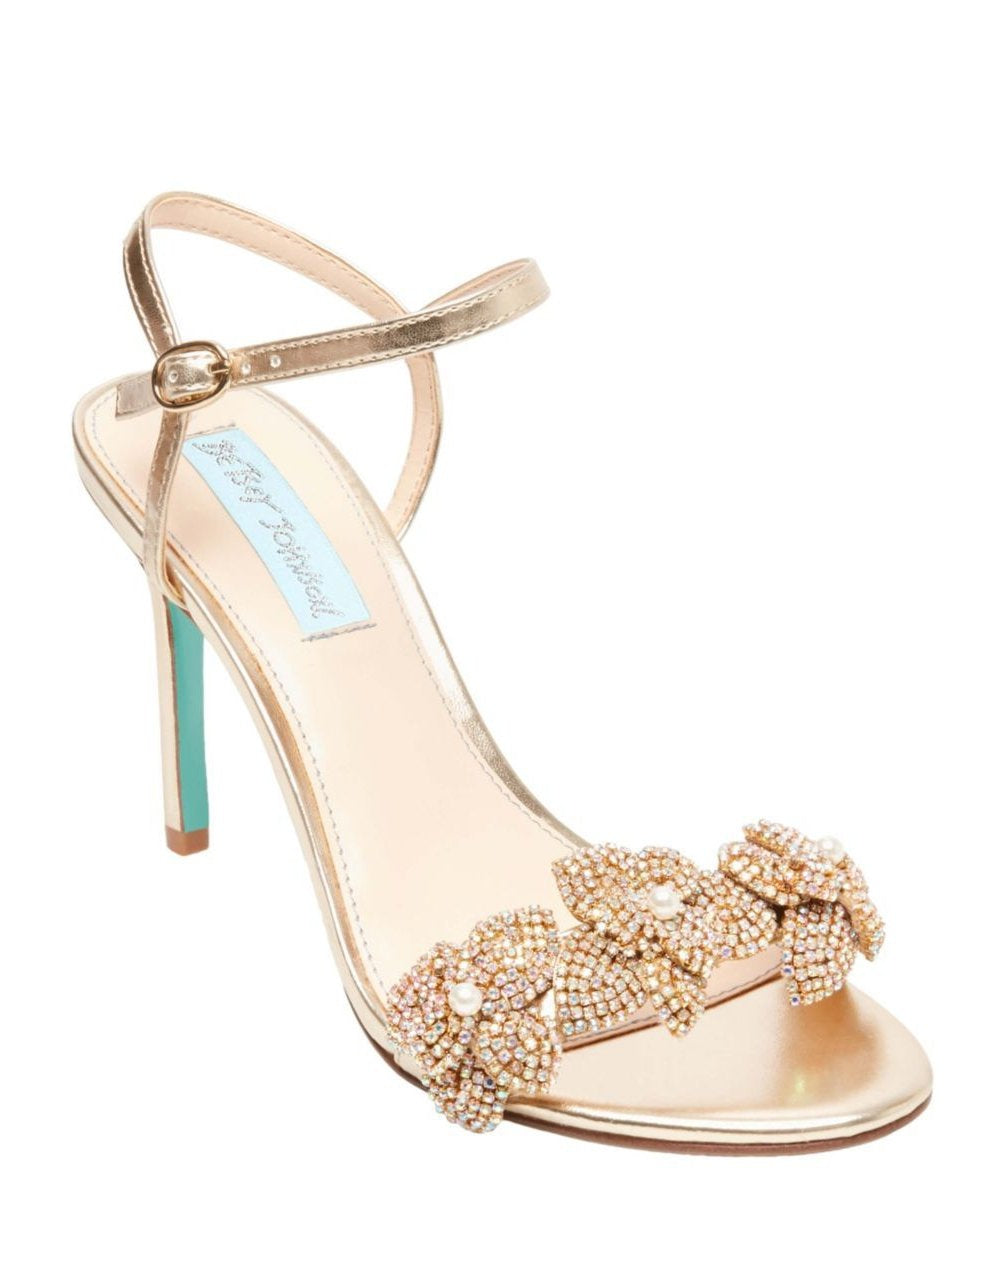 SB-HARLO GOLD - SHOES - Betsey Johnson